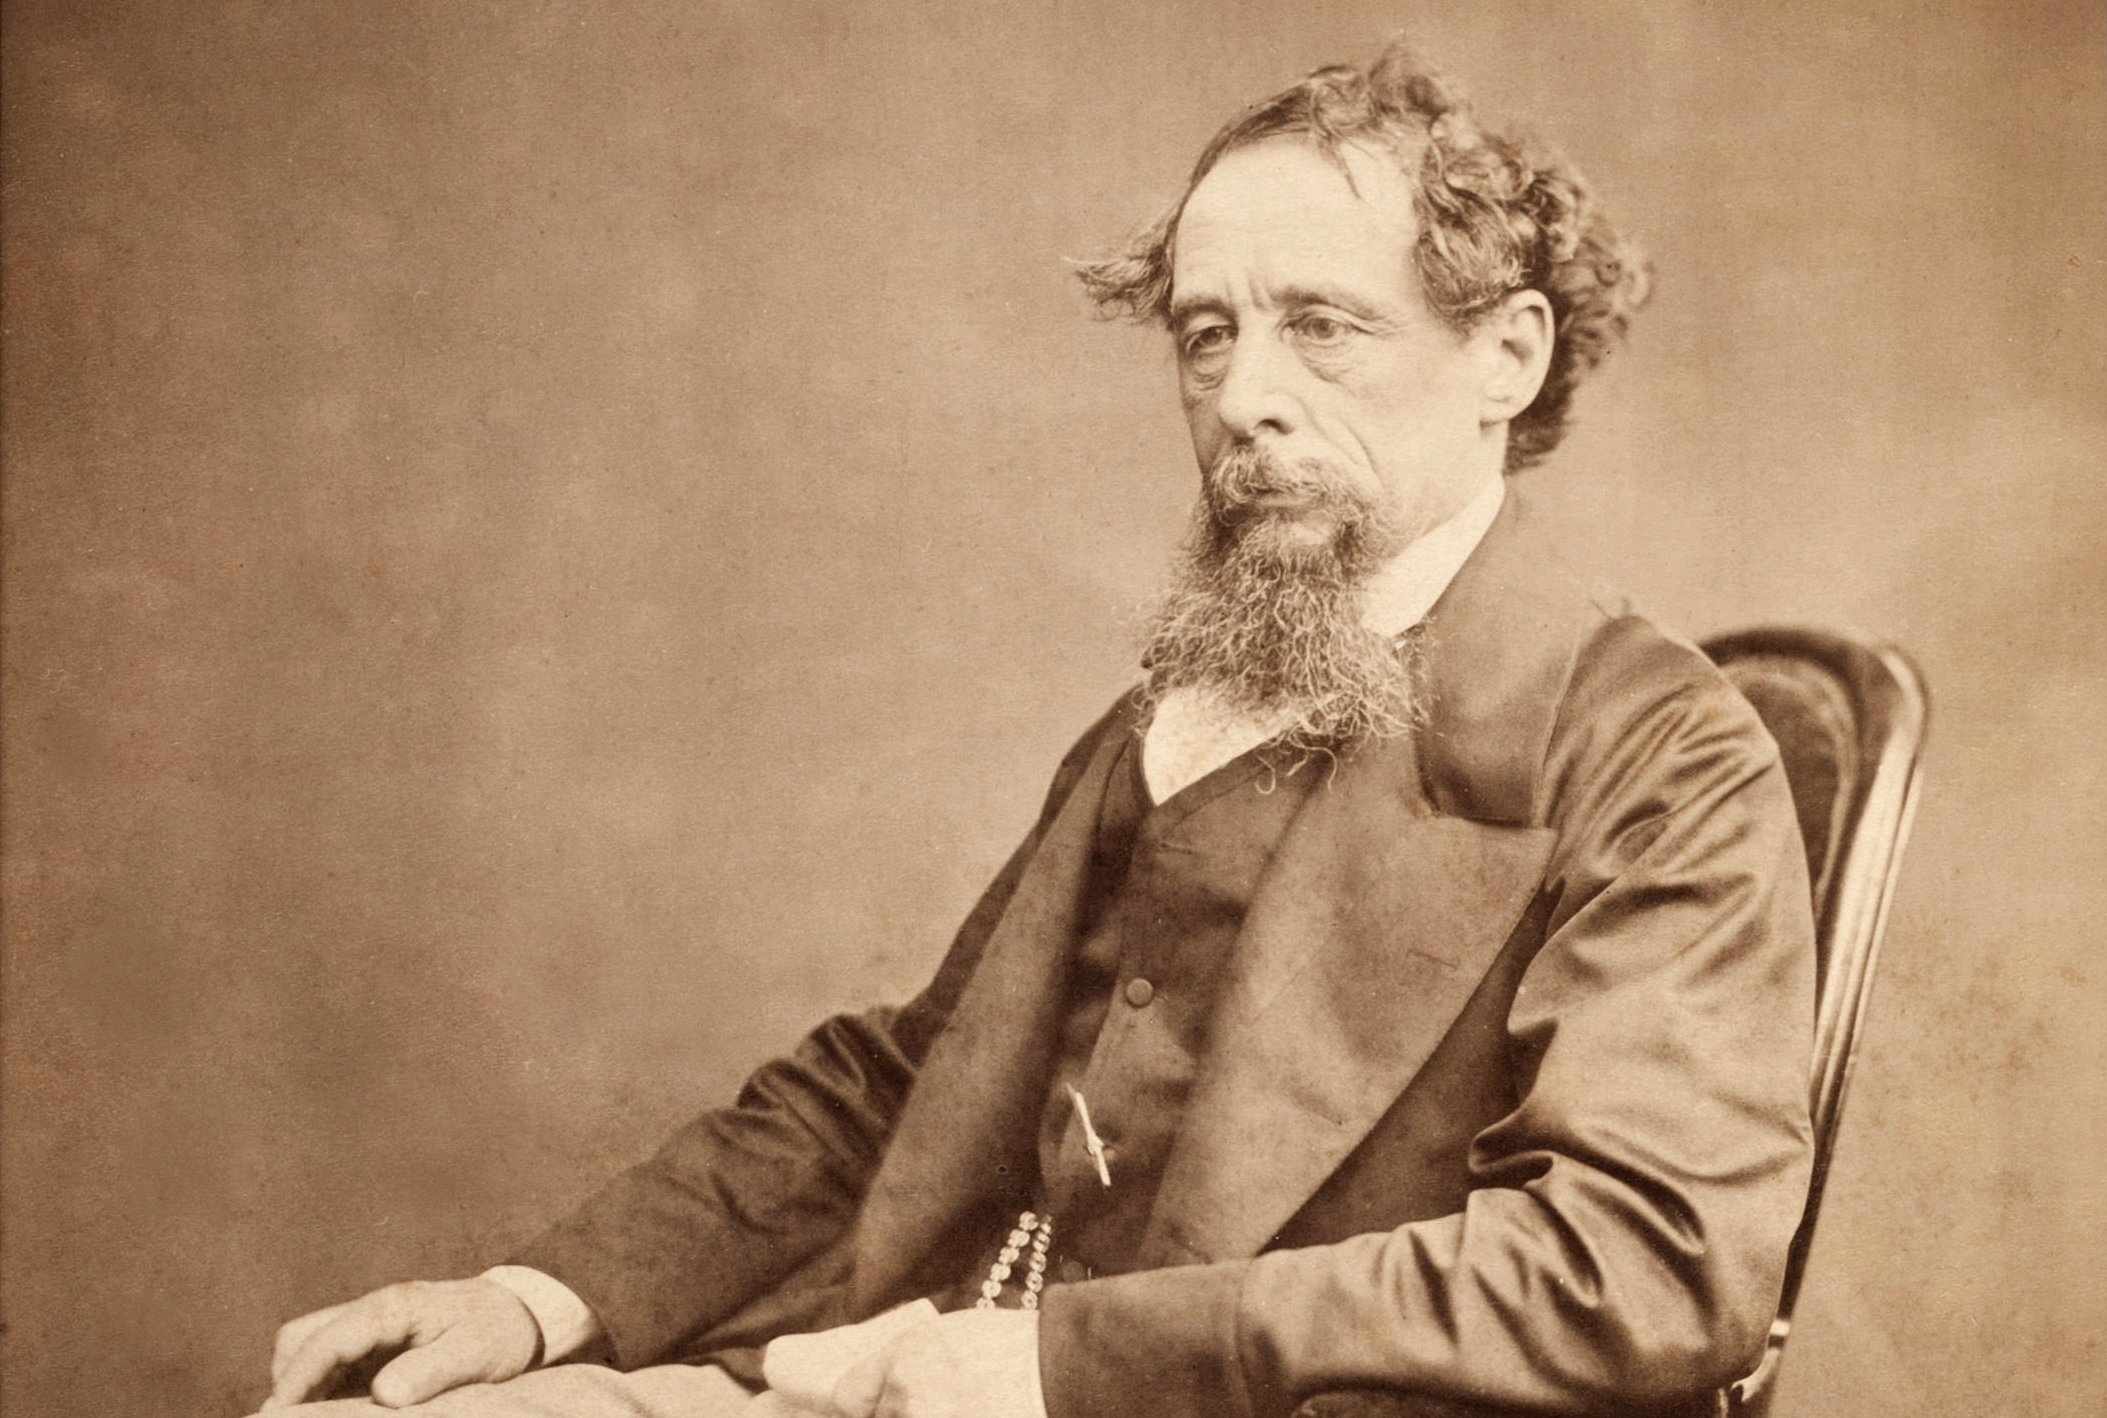 Charles Dickens c.1860s. Photo: Wikimedia Commons.